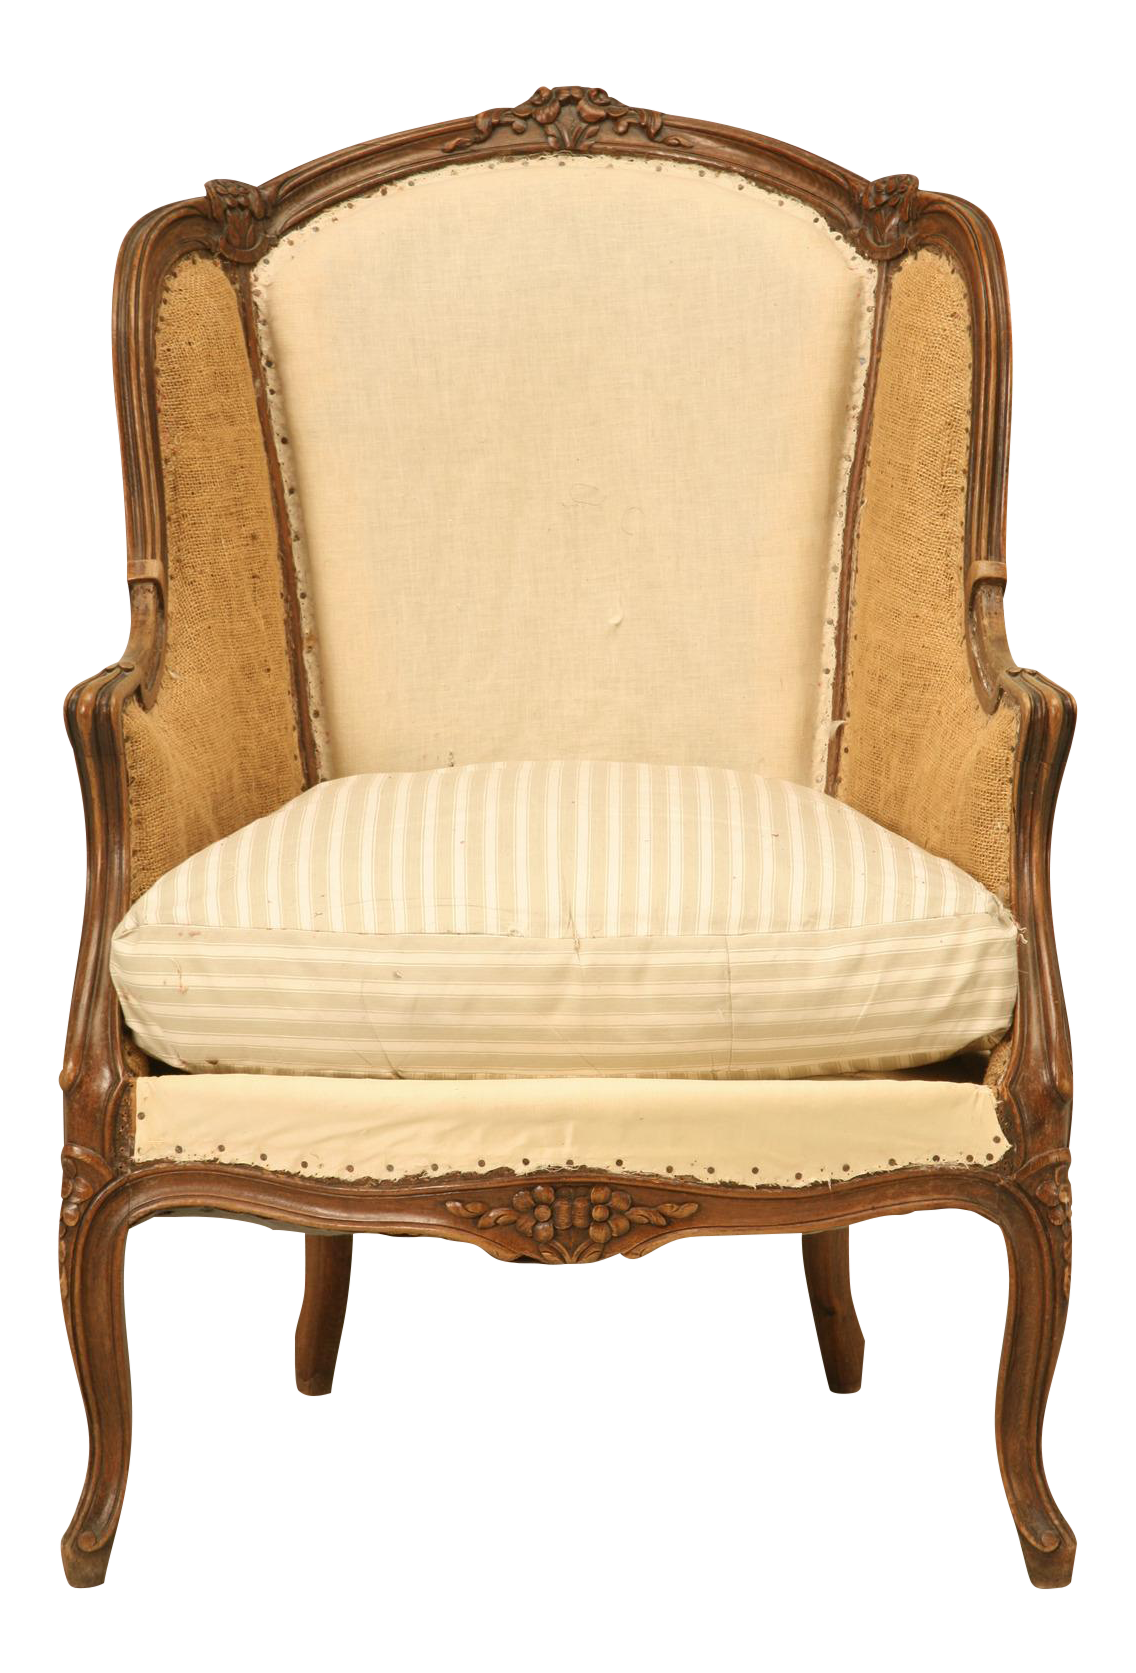 Antique French Louis XV Style Chair, Circa 1880s For Sale